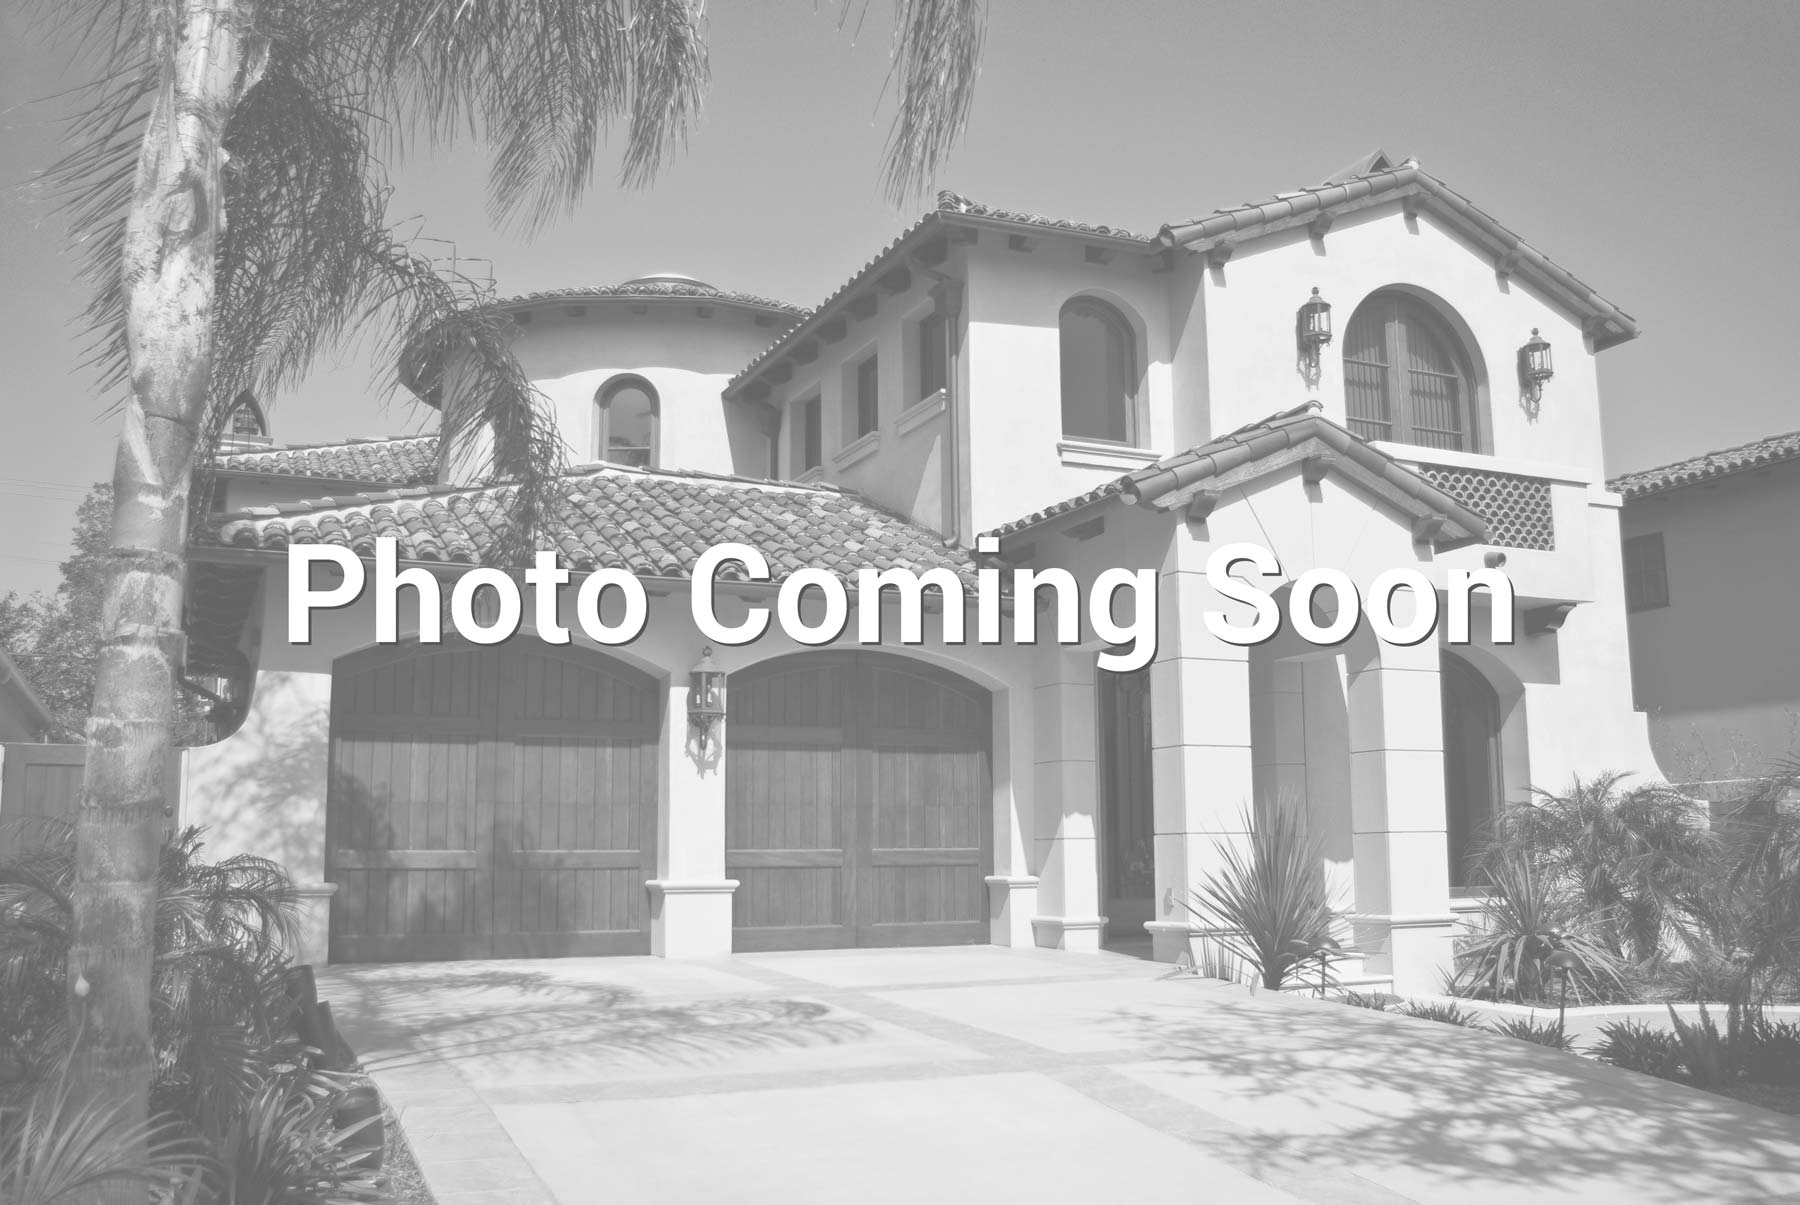 $435,000 - 5Br/4Ba - Home for Sale in Westwing Mountain Phase 2 Parcel 29, Peoria